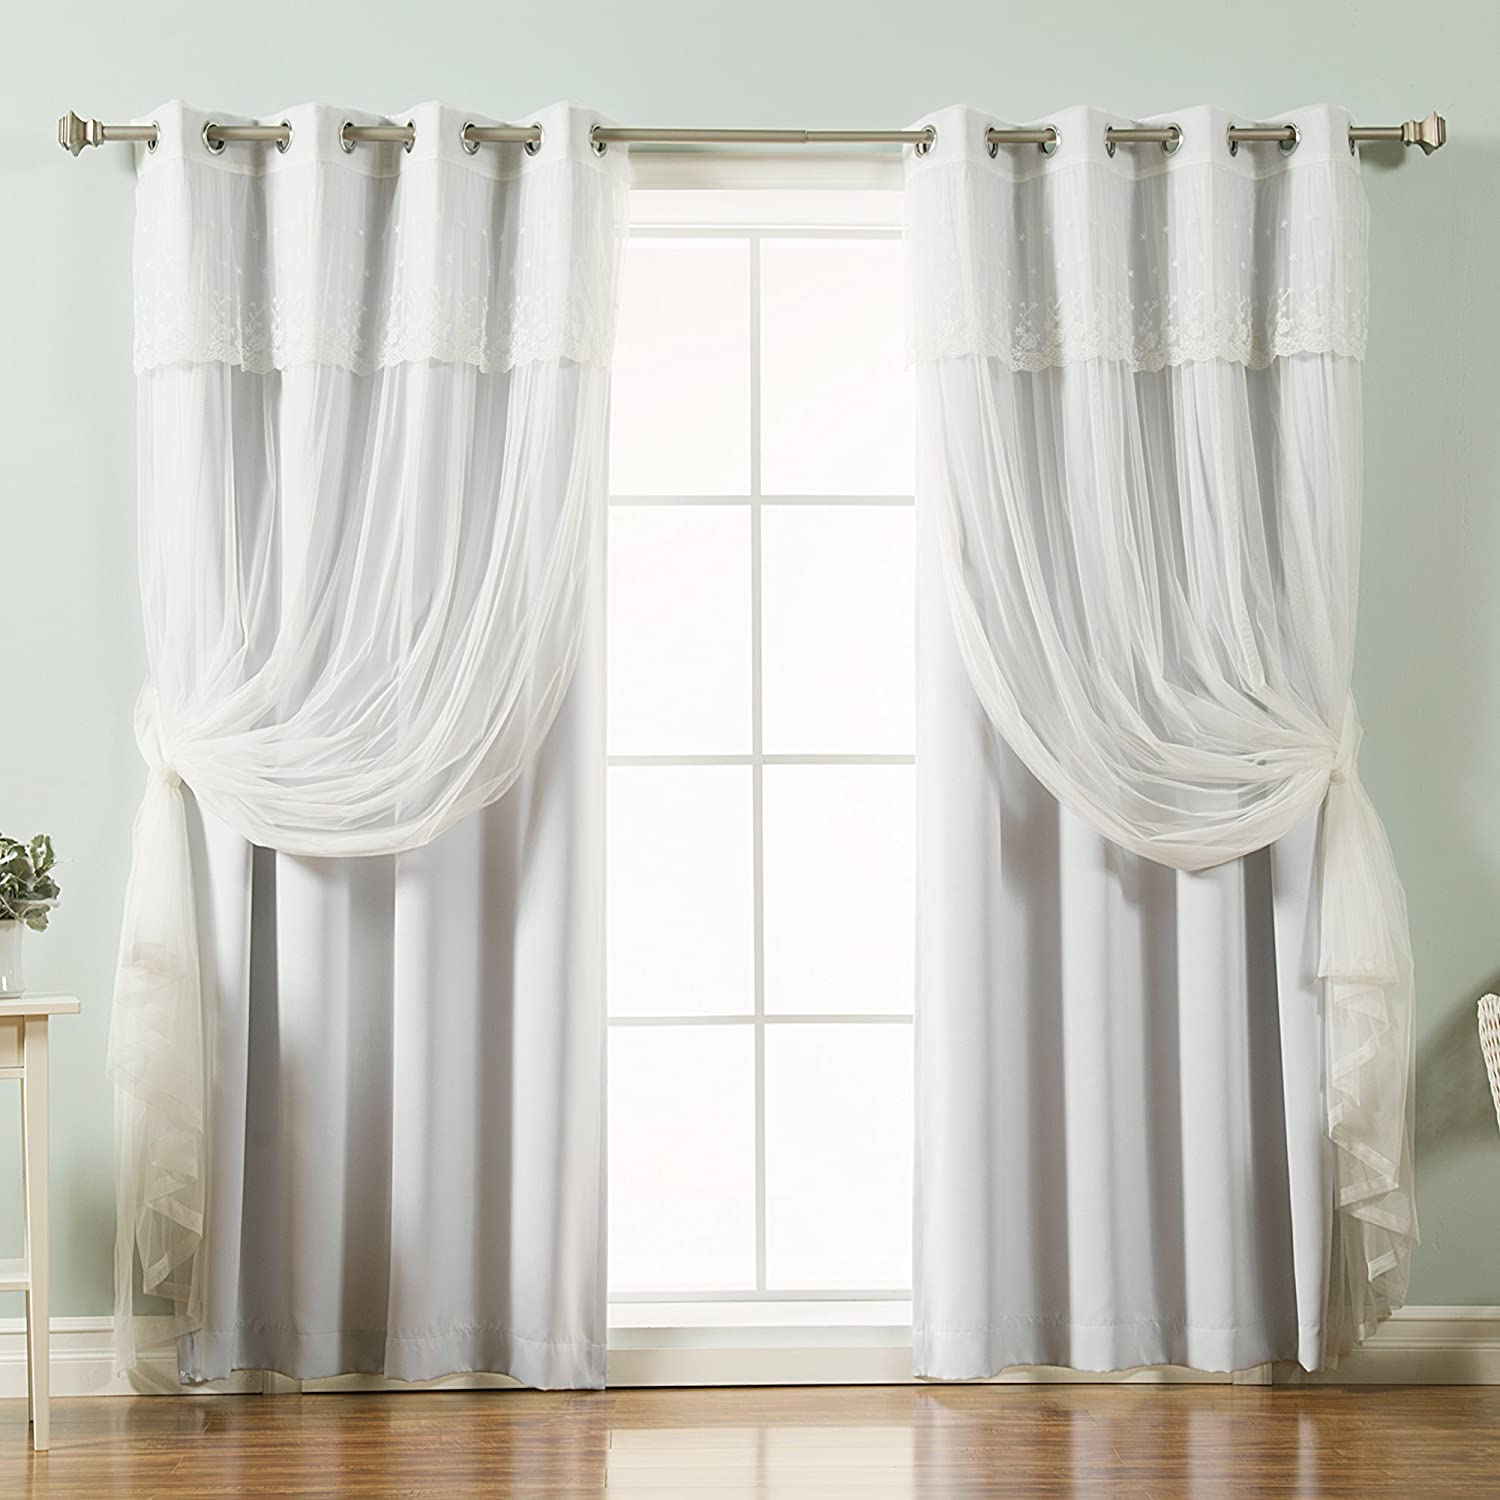 Best Home Fashion Mix & Match Tulle Sheer with Attached Valance & Solid Blackout Curtain Set